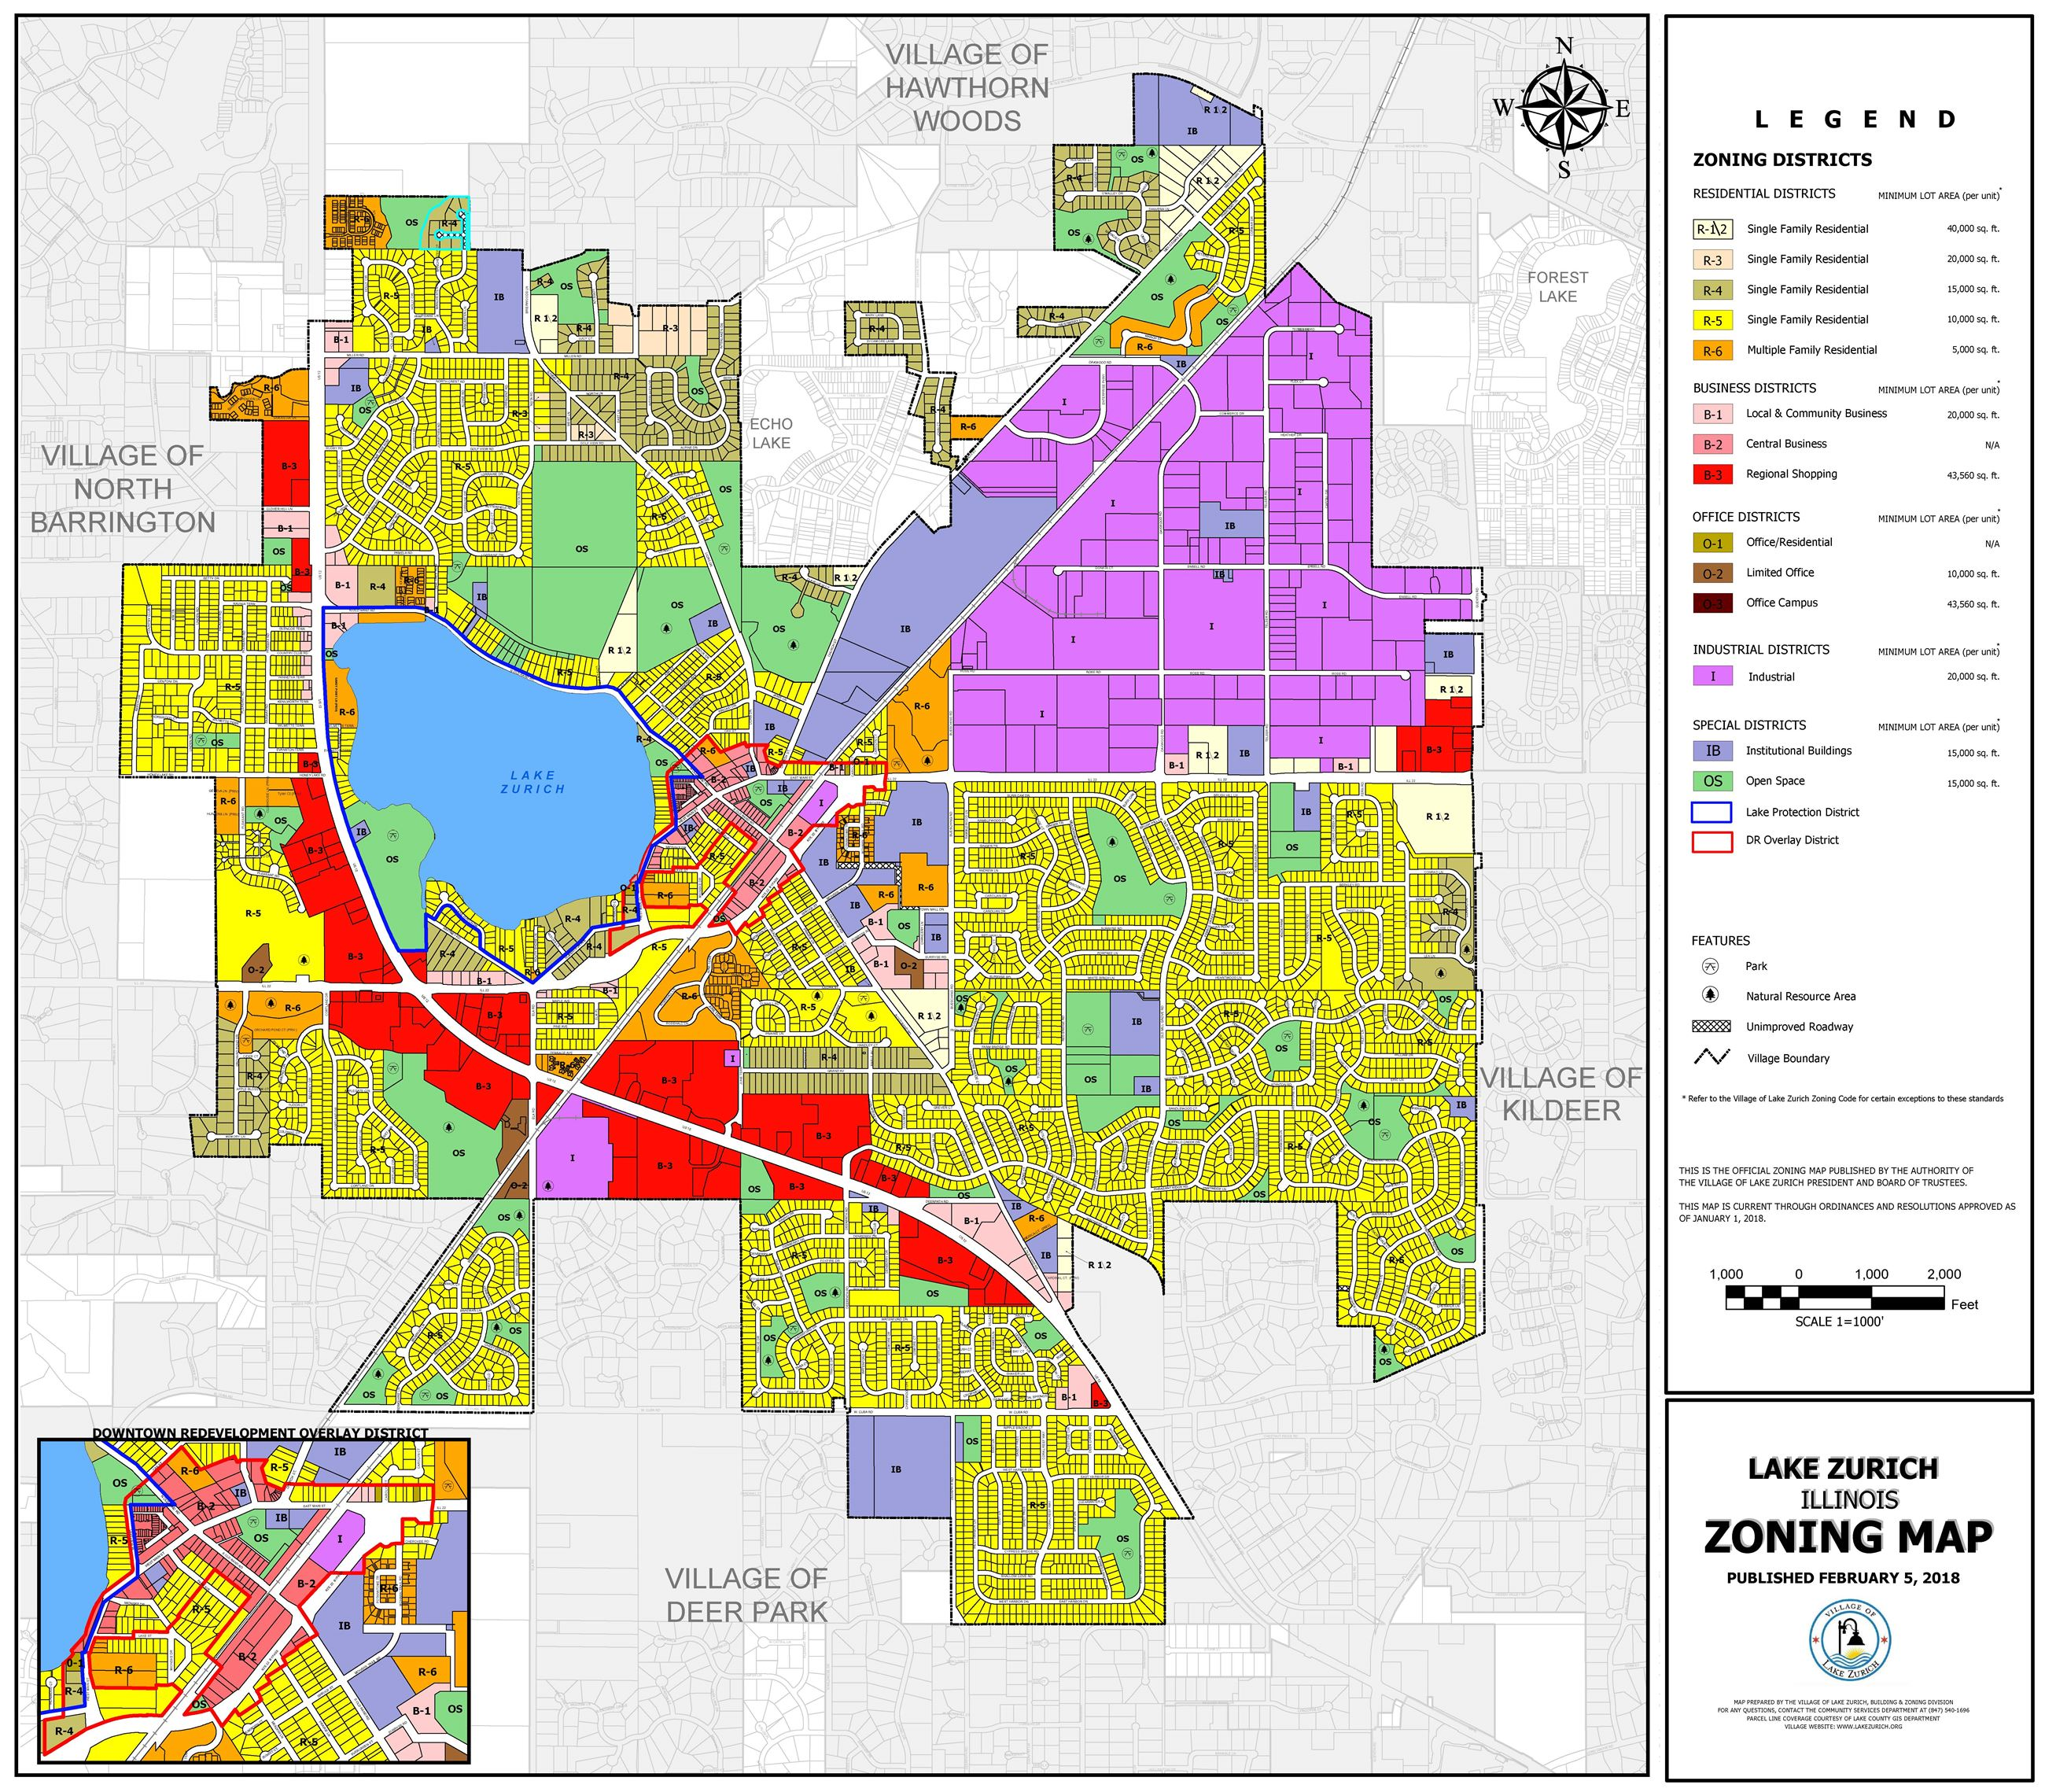 Lake Zurich Zoning Map